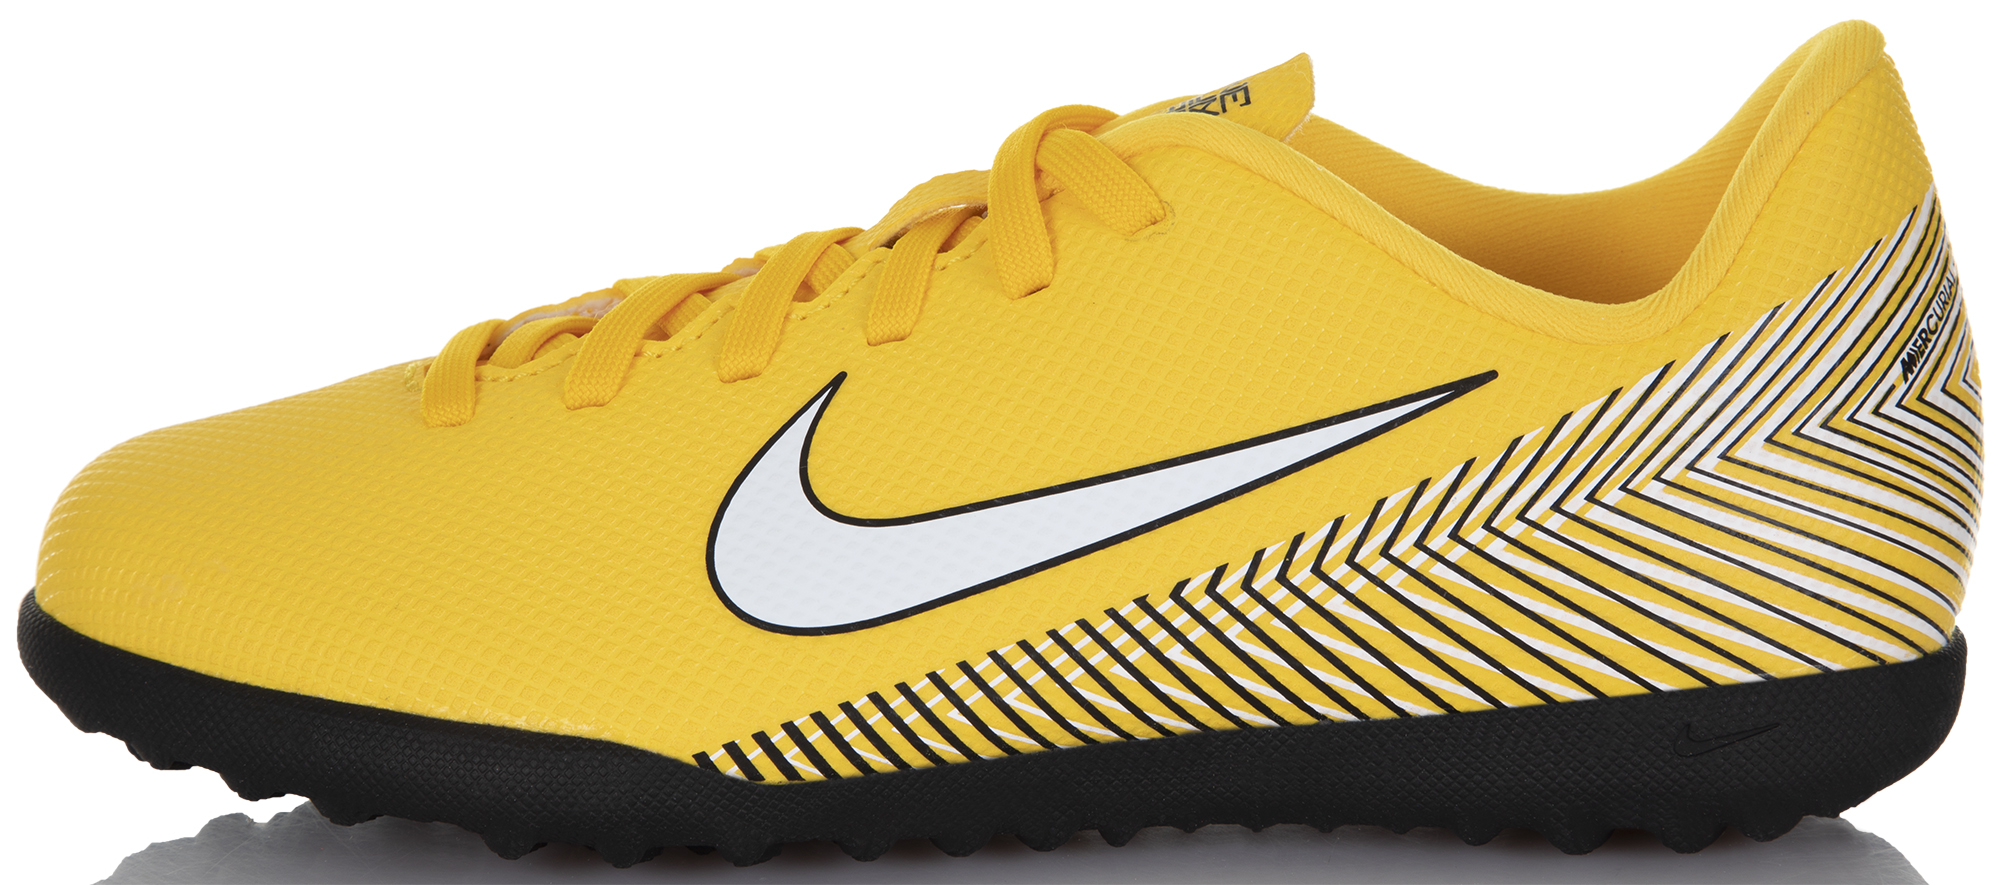 Nike Бутсы для мальчиков Nike Neymar Jr. VaporX 12 Club TF, размер 37,5 цена